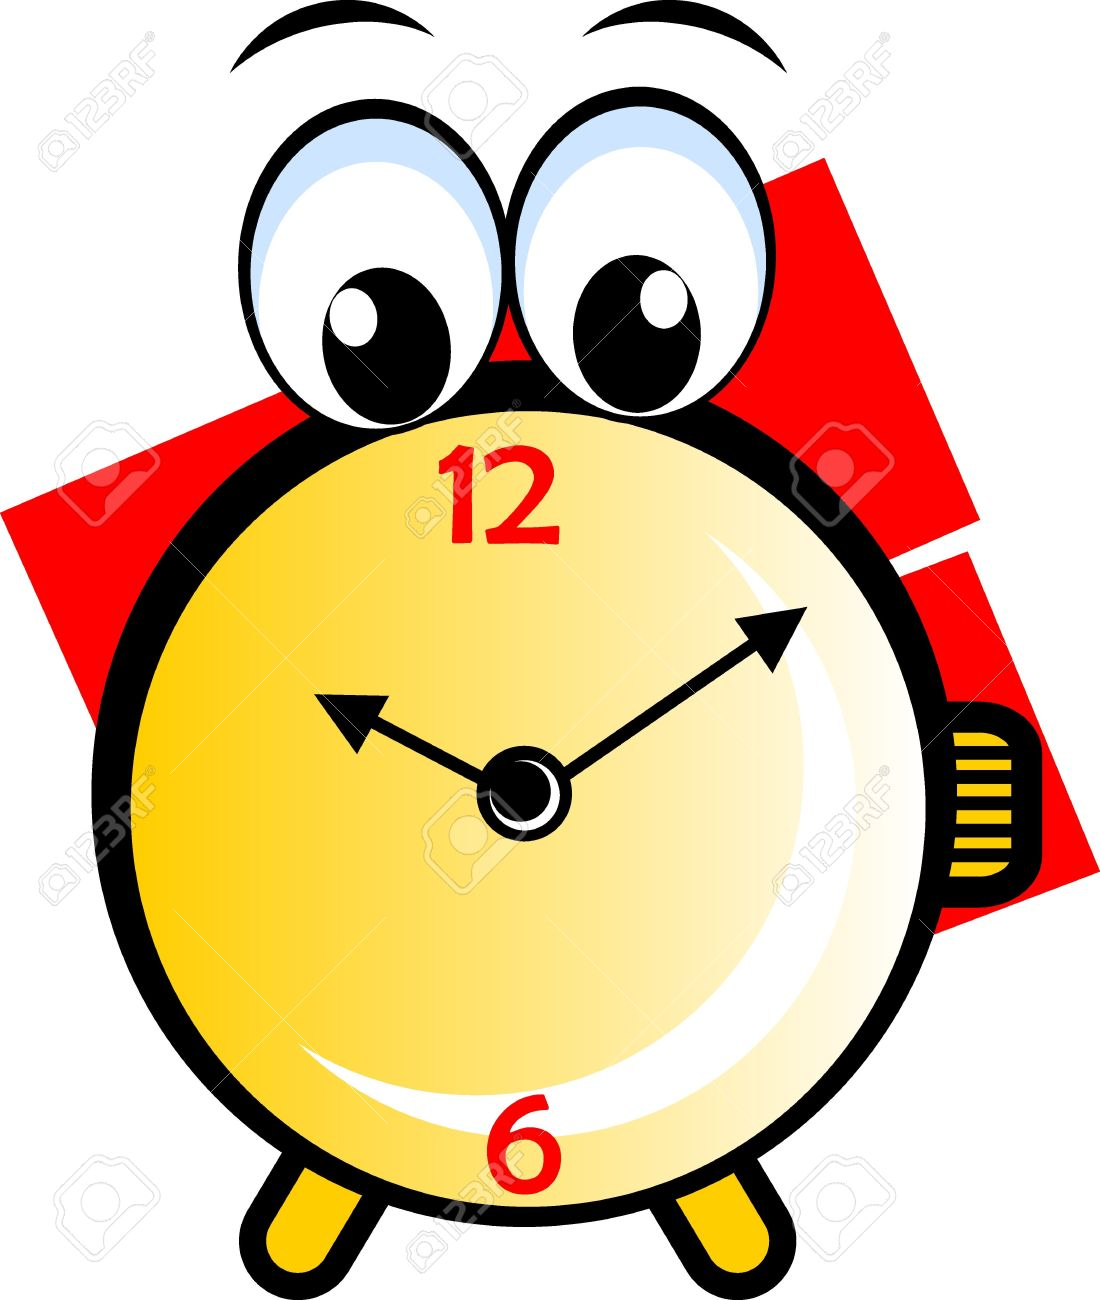 Illustration Of A Cartoon Round Clock Stock Photo Picture And